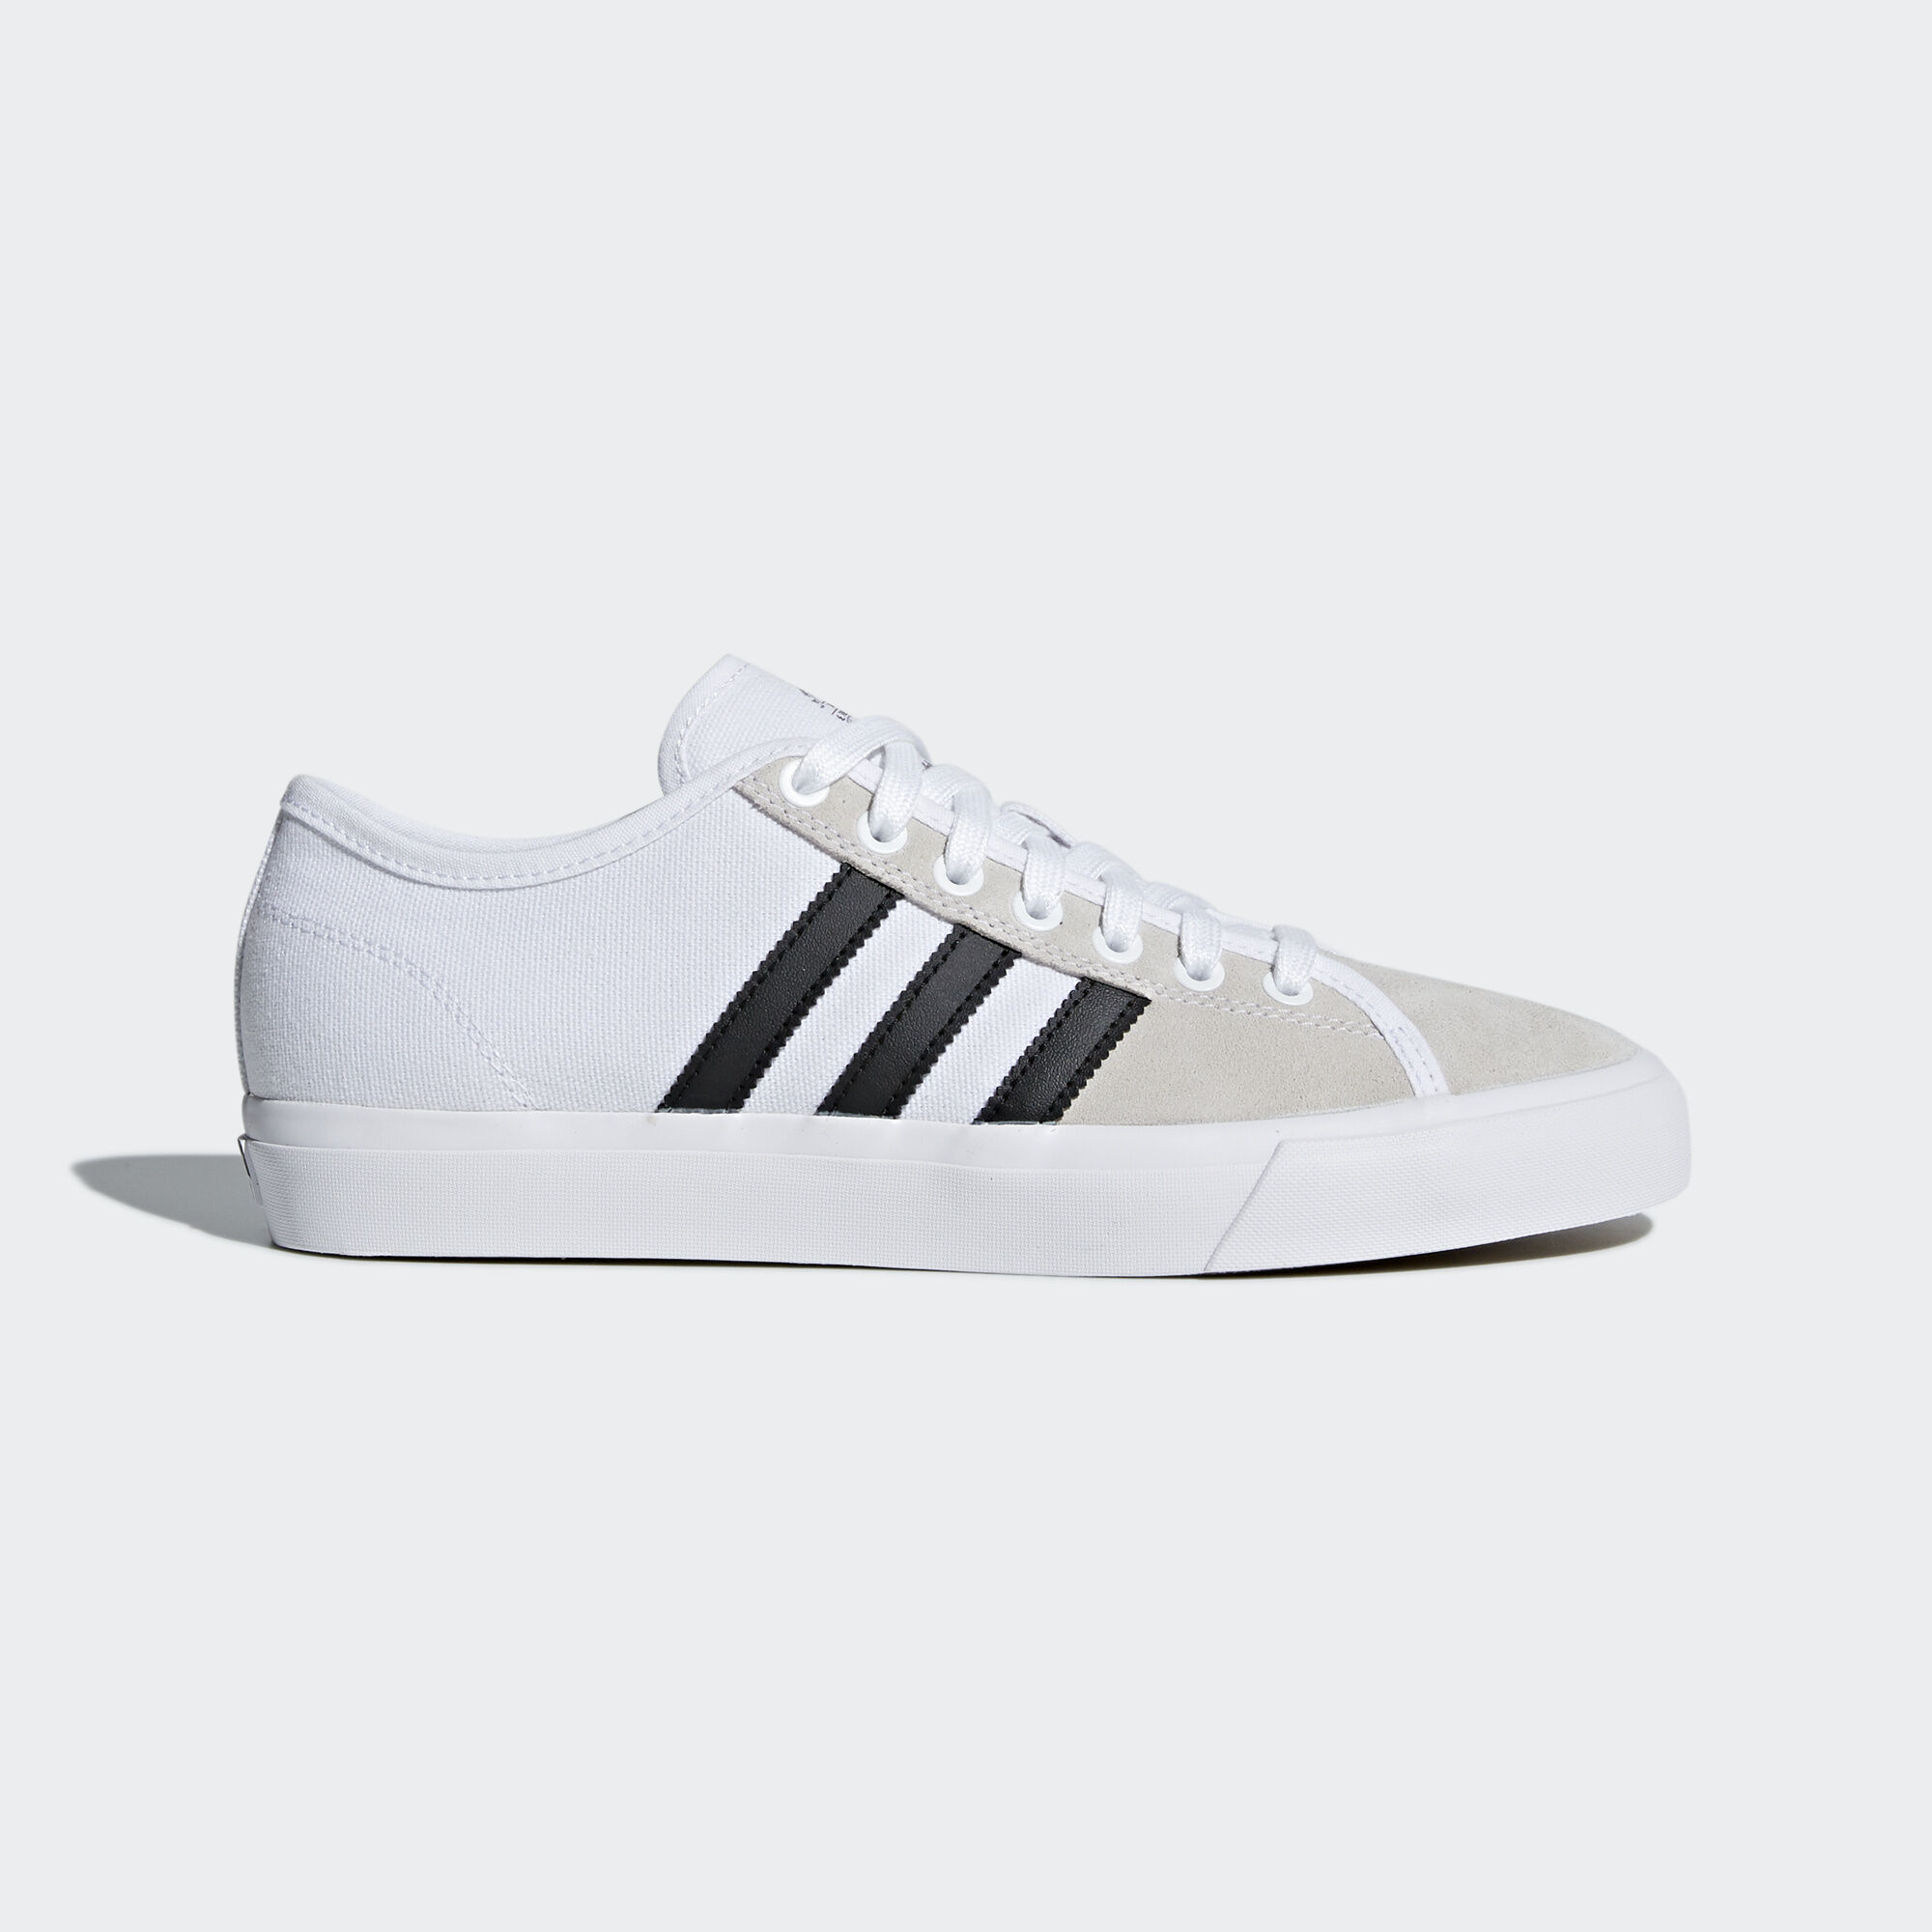 adidas Skateboarding Matchcourt RX Trainers In White CQ1129 - White adidas G68ce9